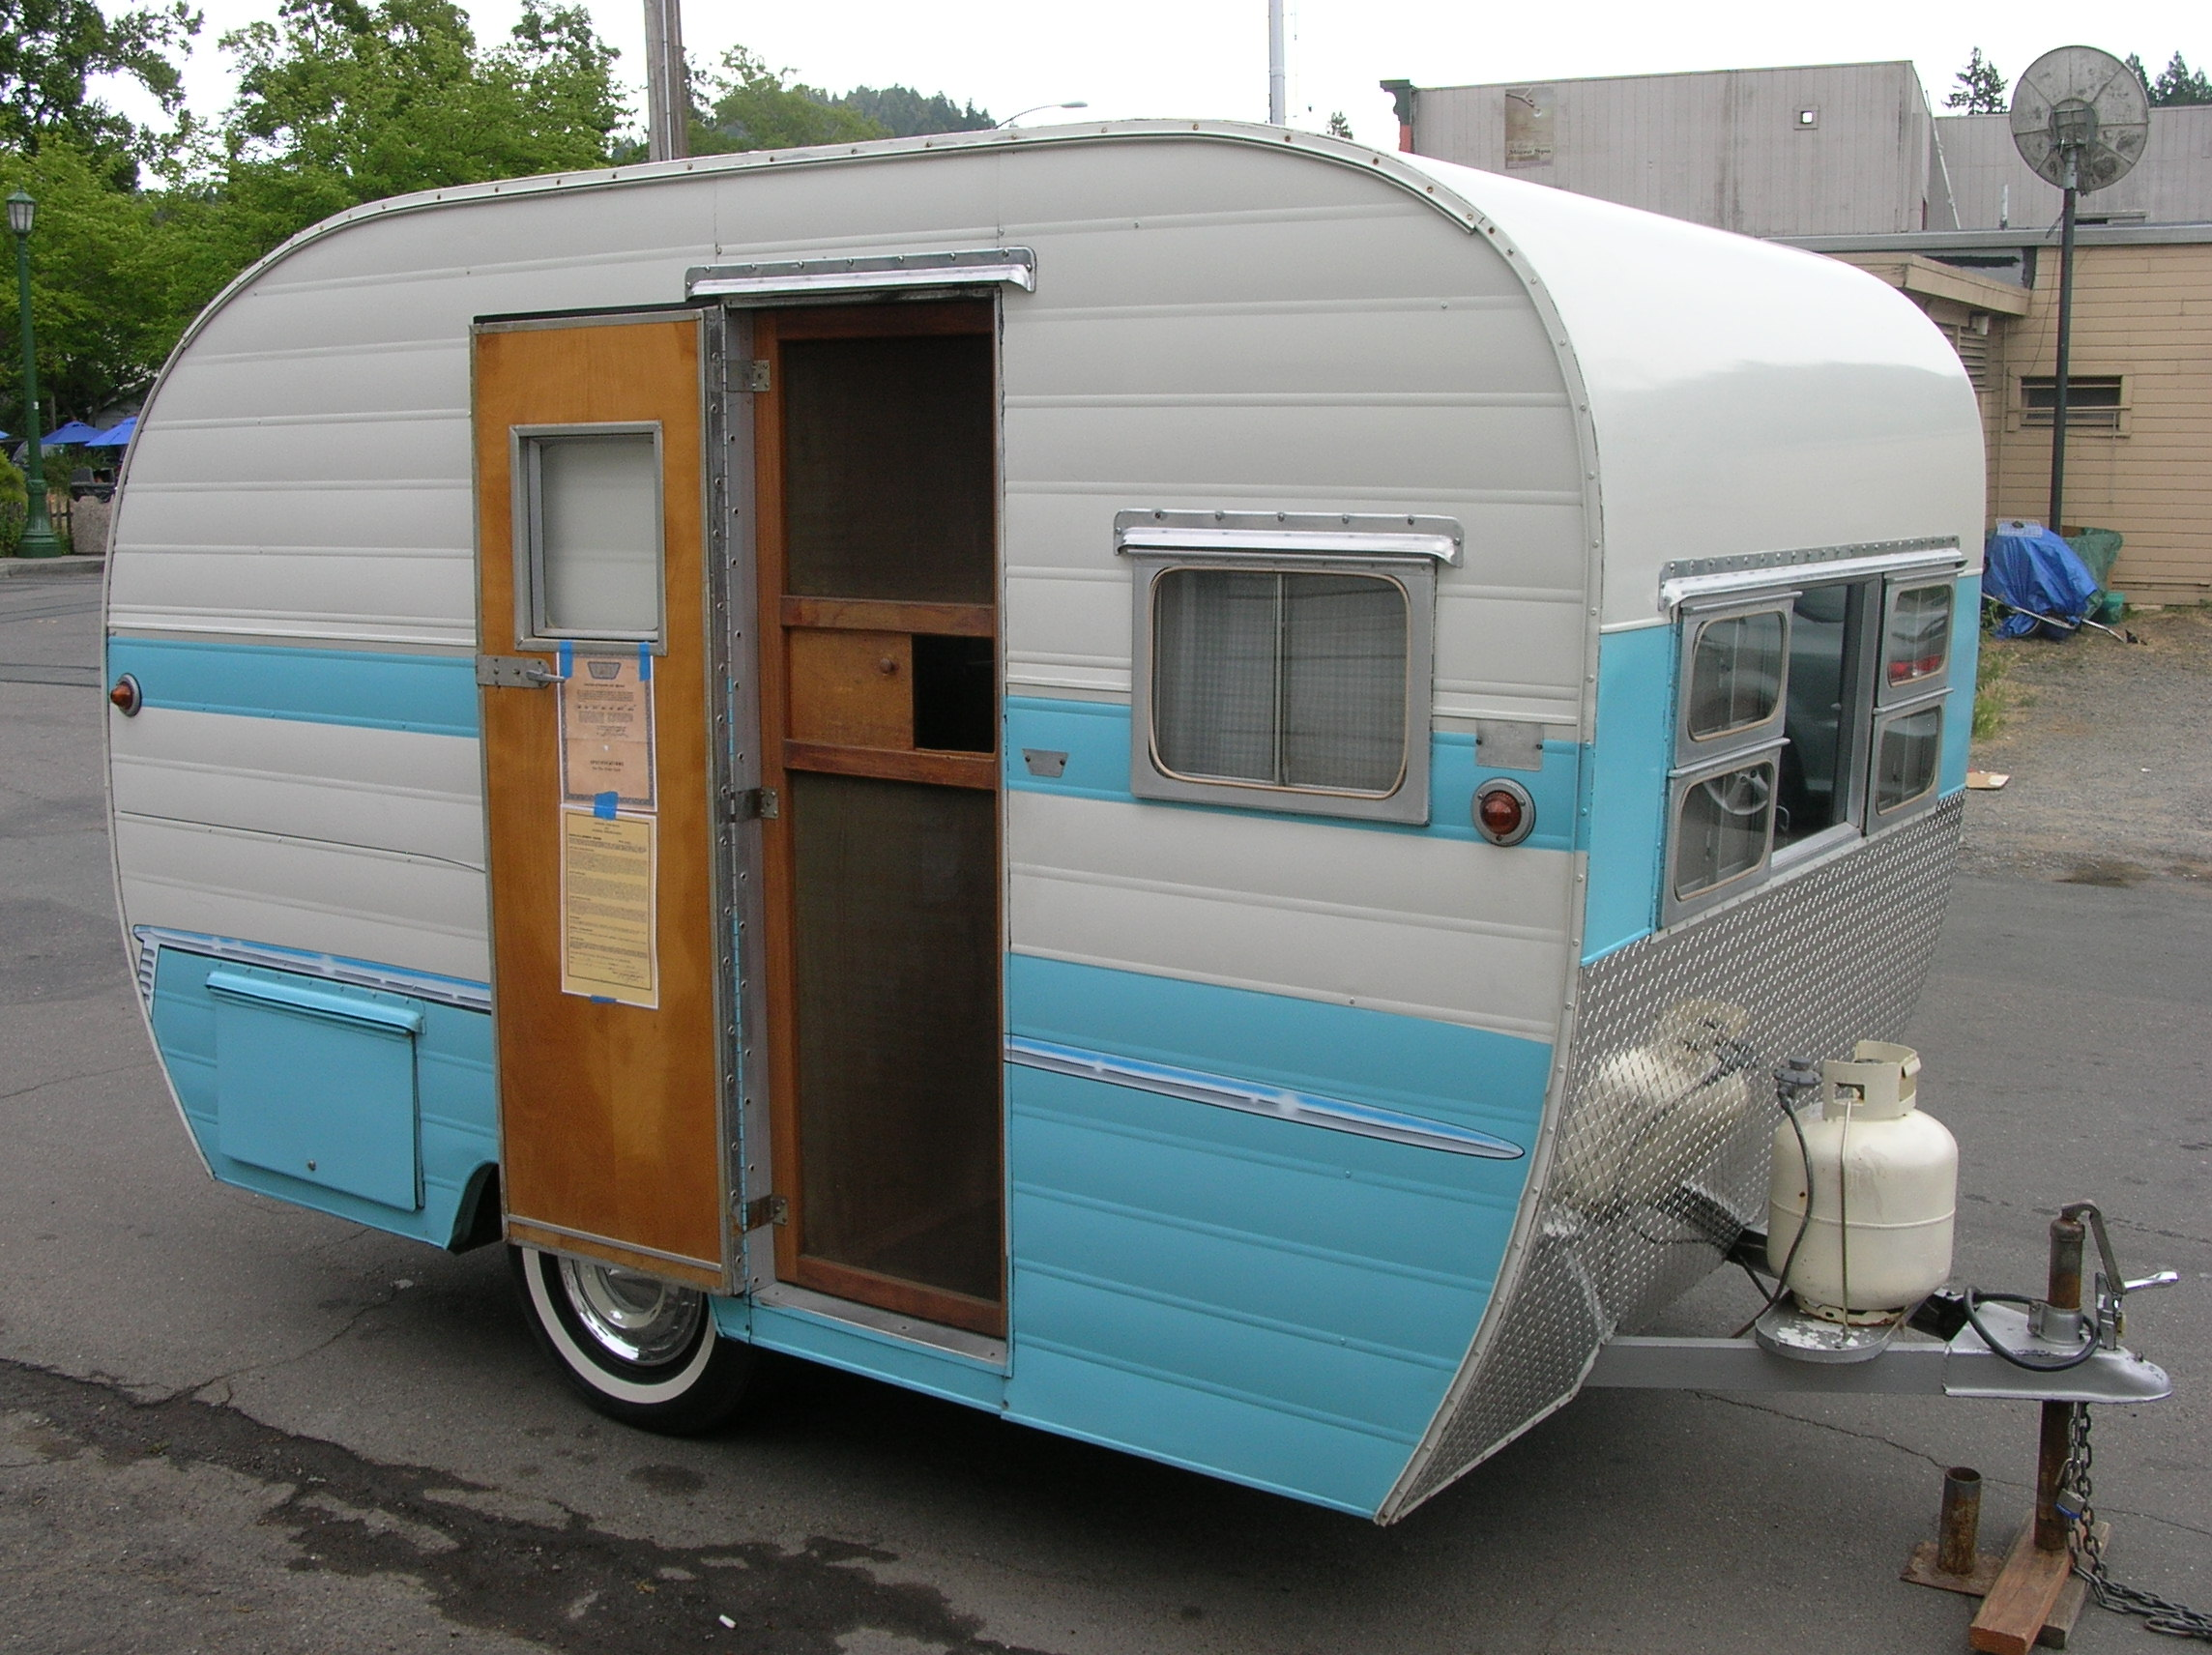 Vintage Airstream Travel Trailers For Sale By Owner